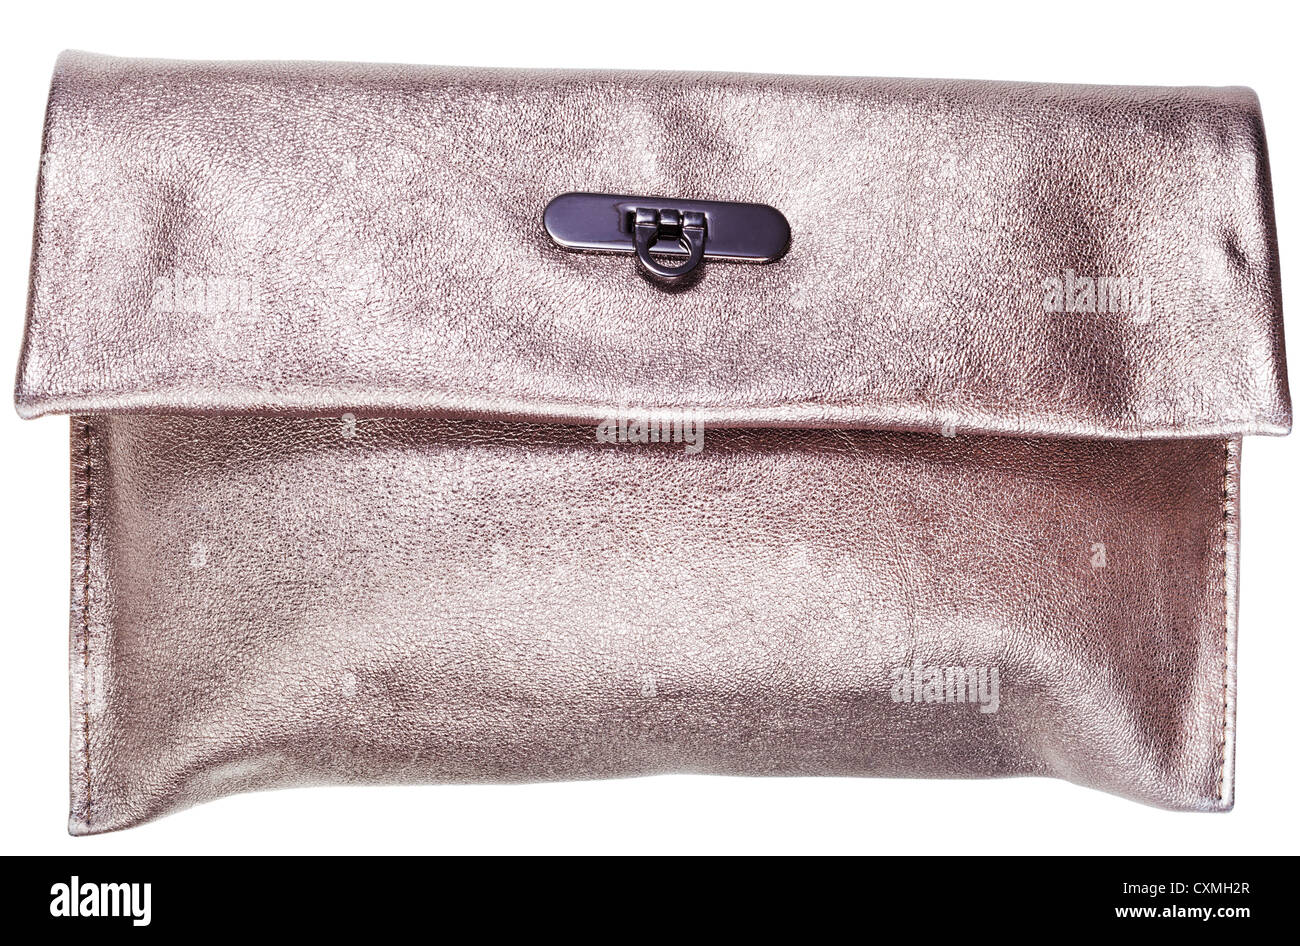 fd769569 golden leather clutch bag isolated on white background - Stock Image